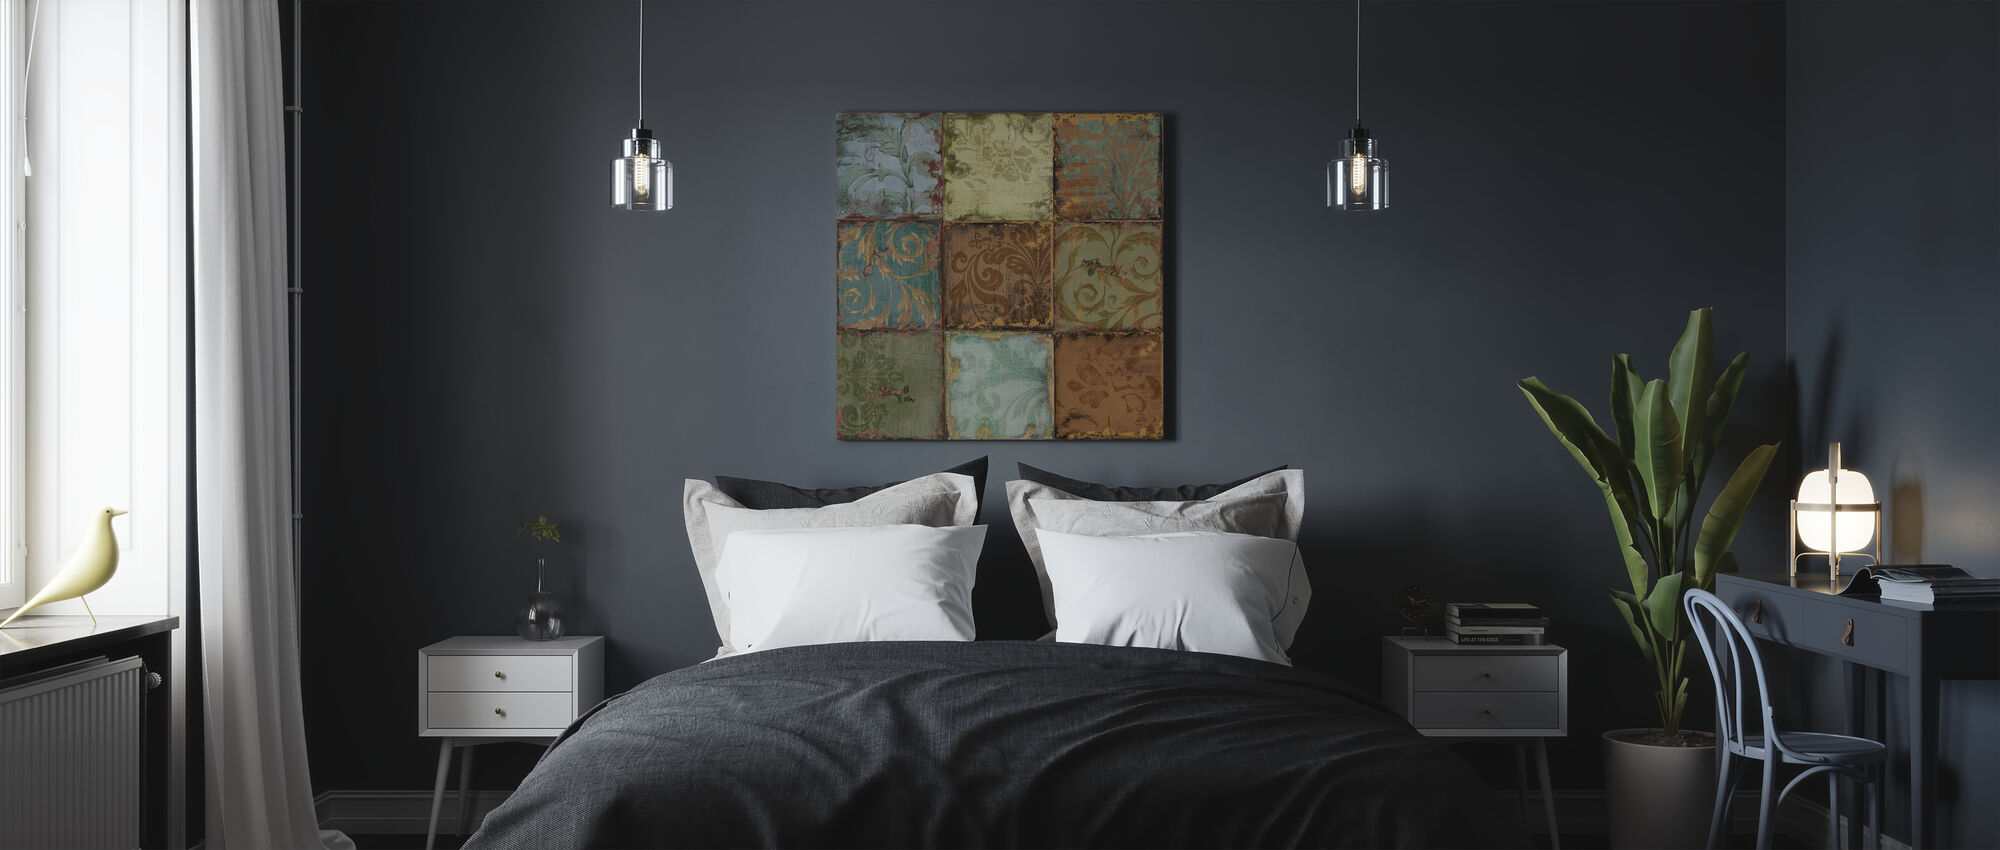 Tapestry Tiles 1 - Canvas print - Bedroom